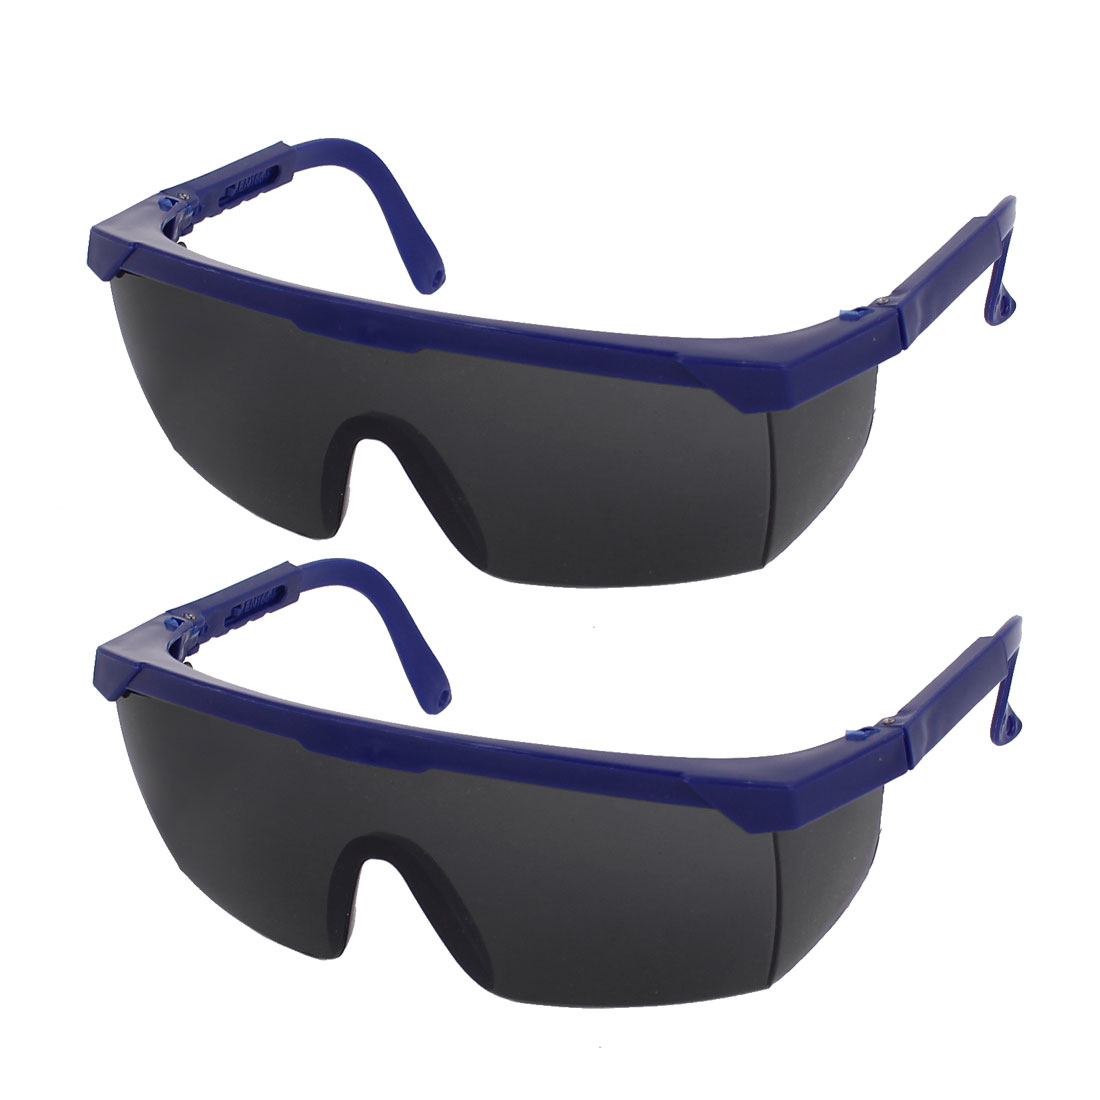 Blue Plastic Half Frame Gray Lens Adjustable Arms Welding Glasses Goggles 2 Pcs